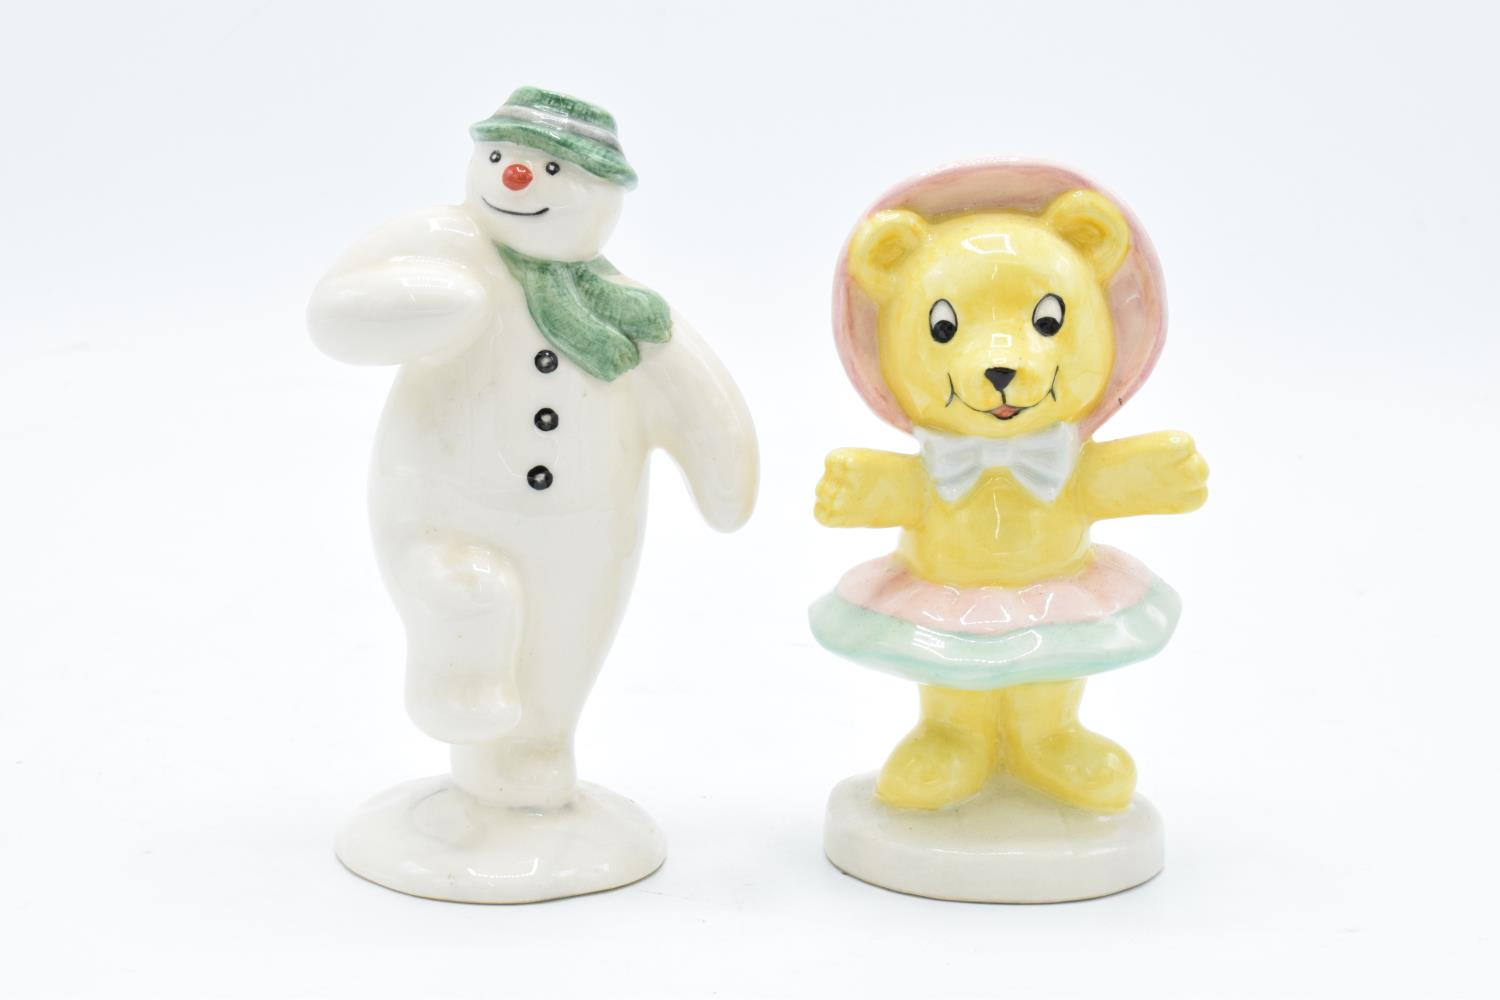 Royal Doulton The Snowman Gift Collection figure The Snowman DS2 and Tessie Bear limited edition